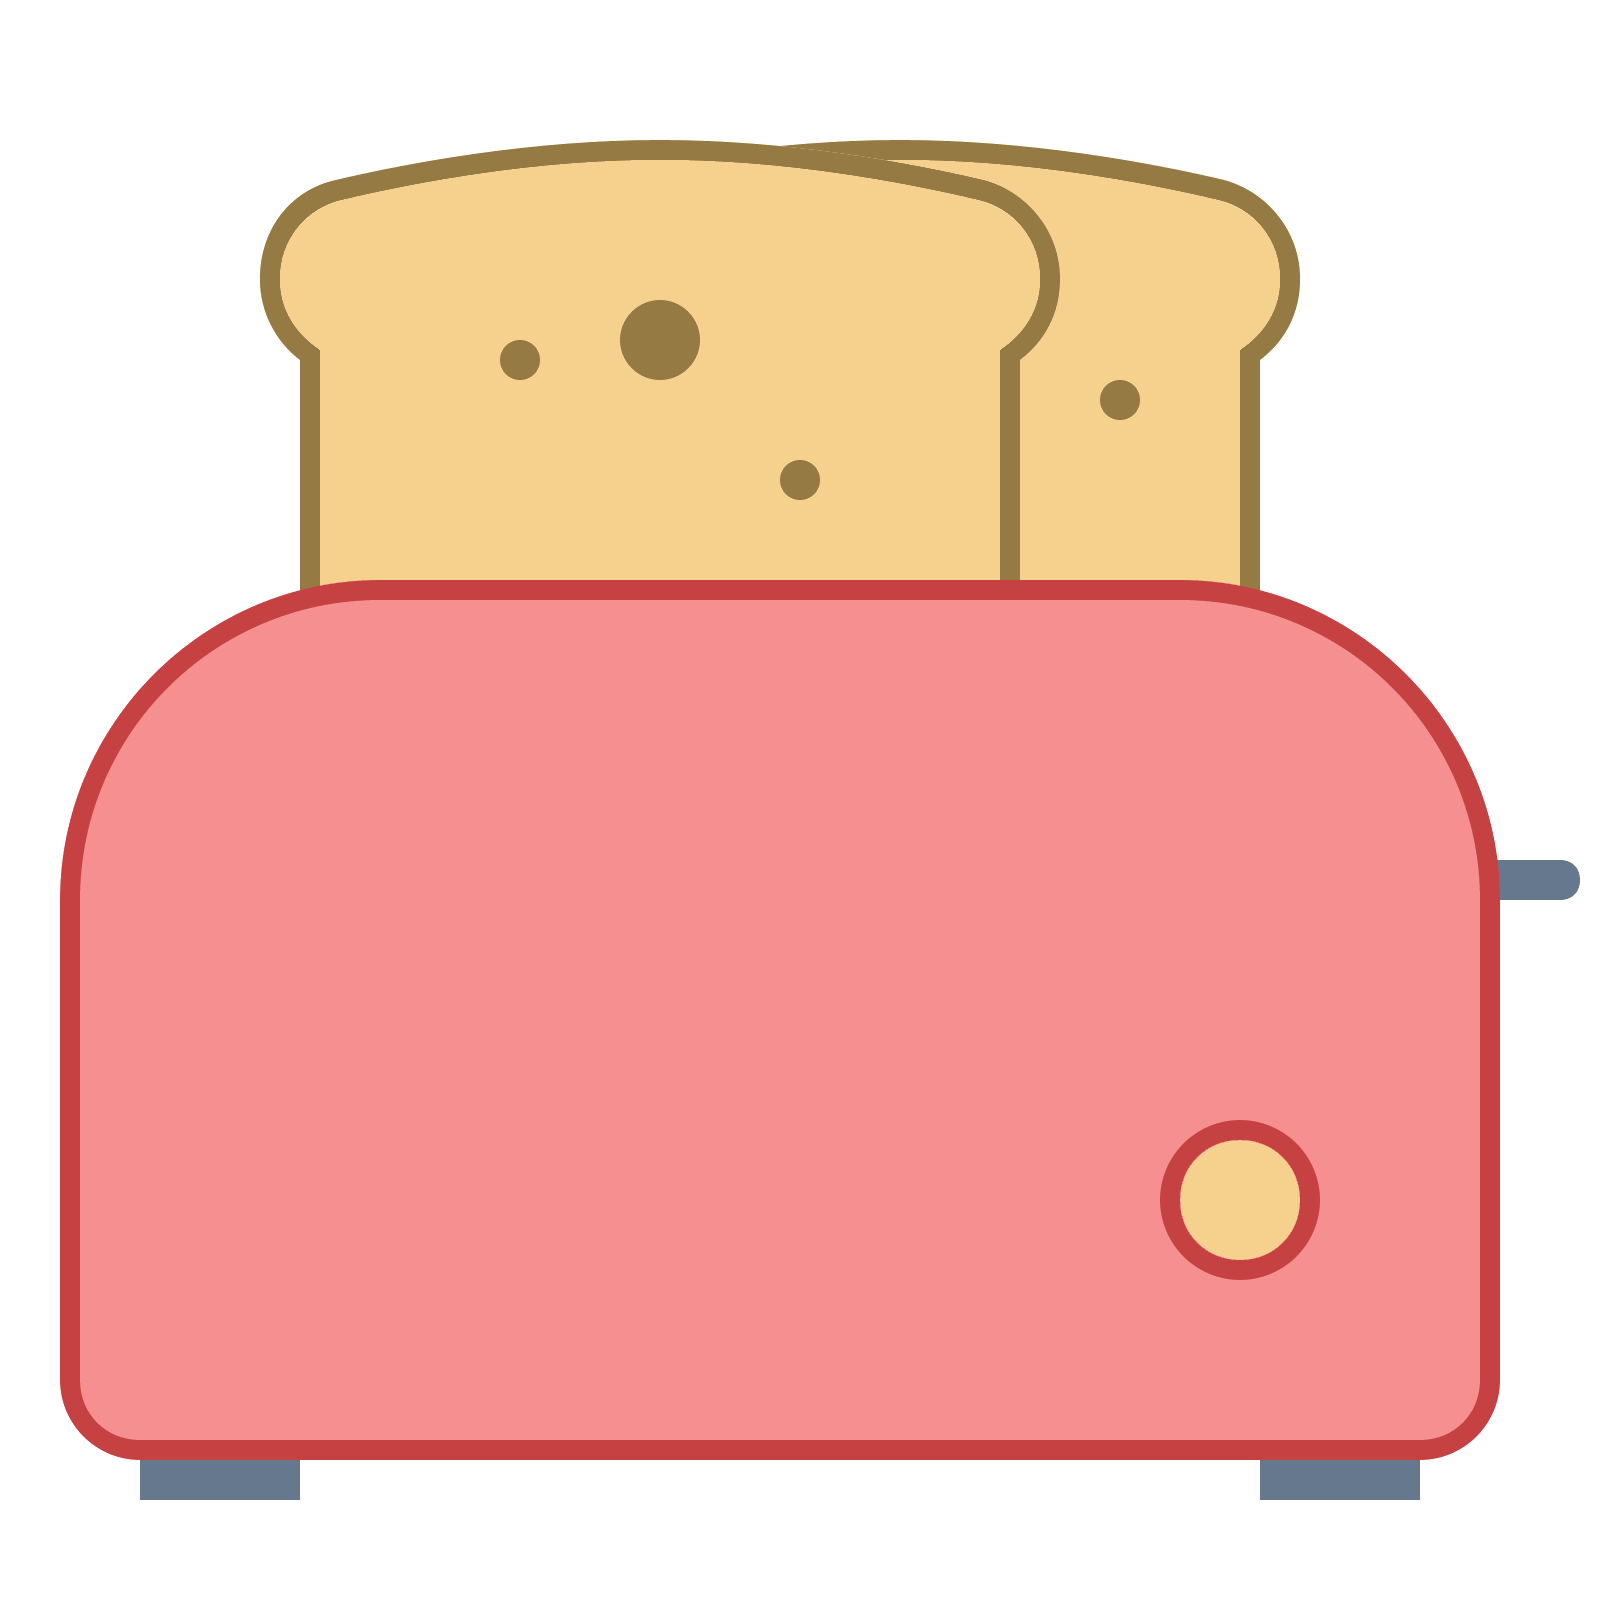 Toaster vector. Icon free download png